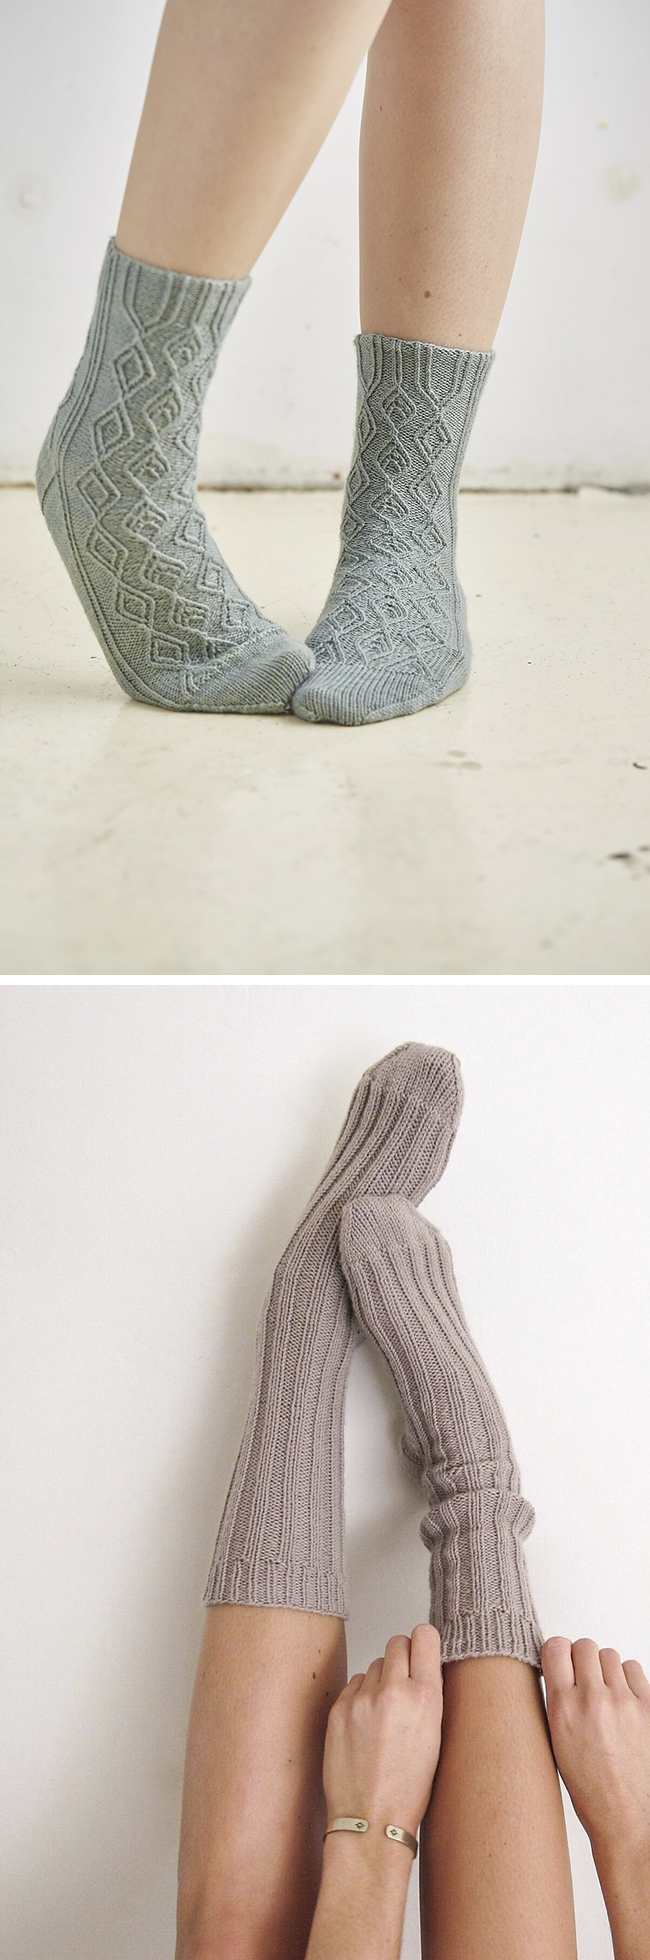 New Favorites: Sock season